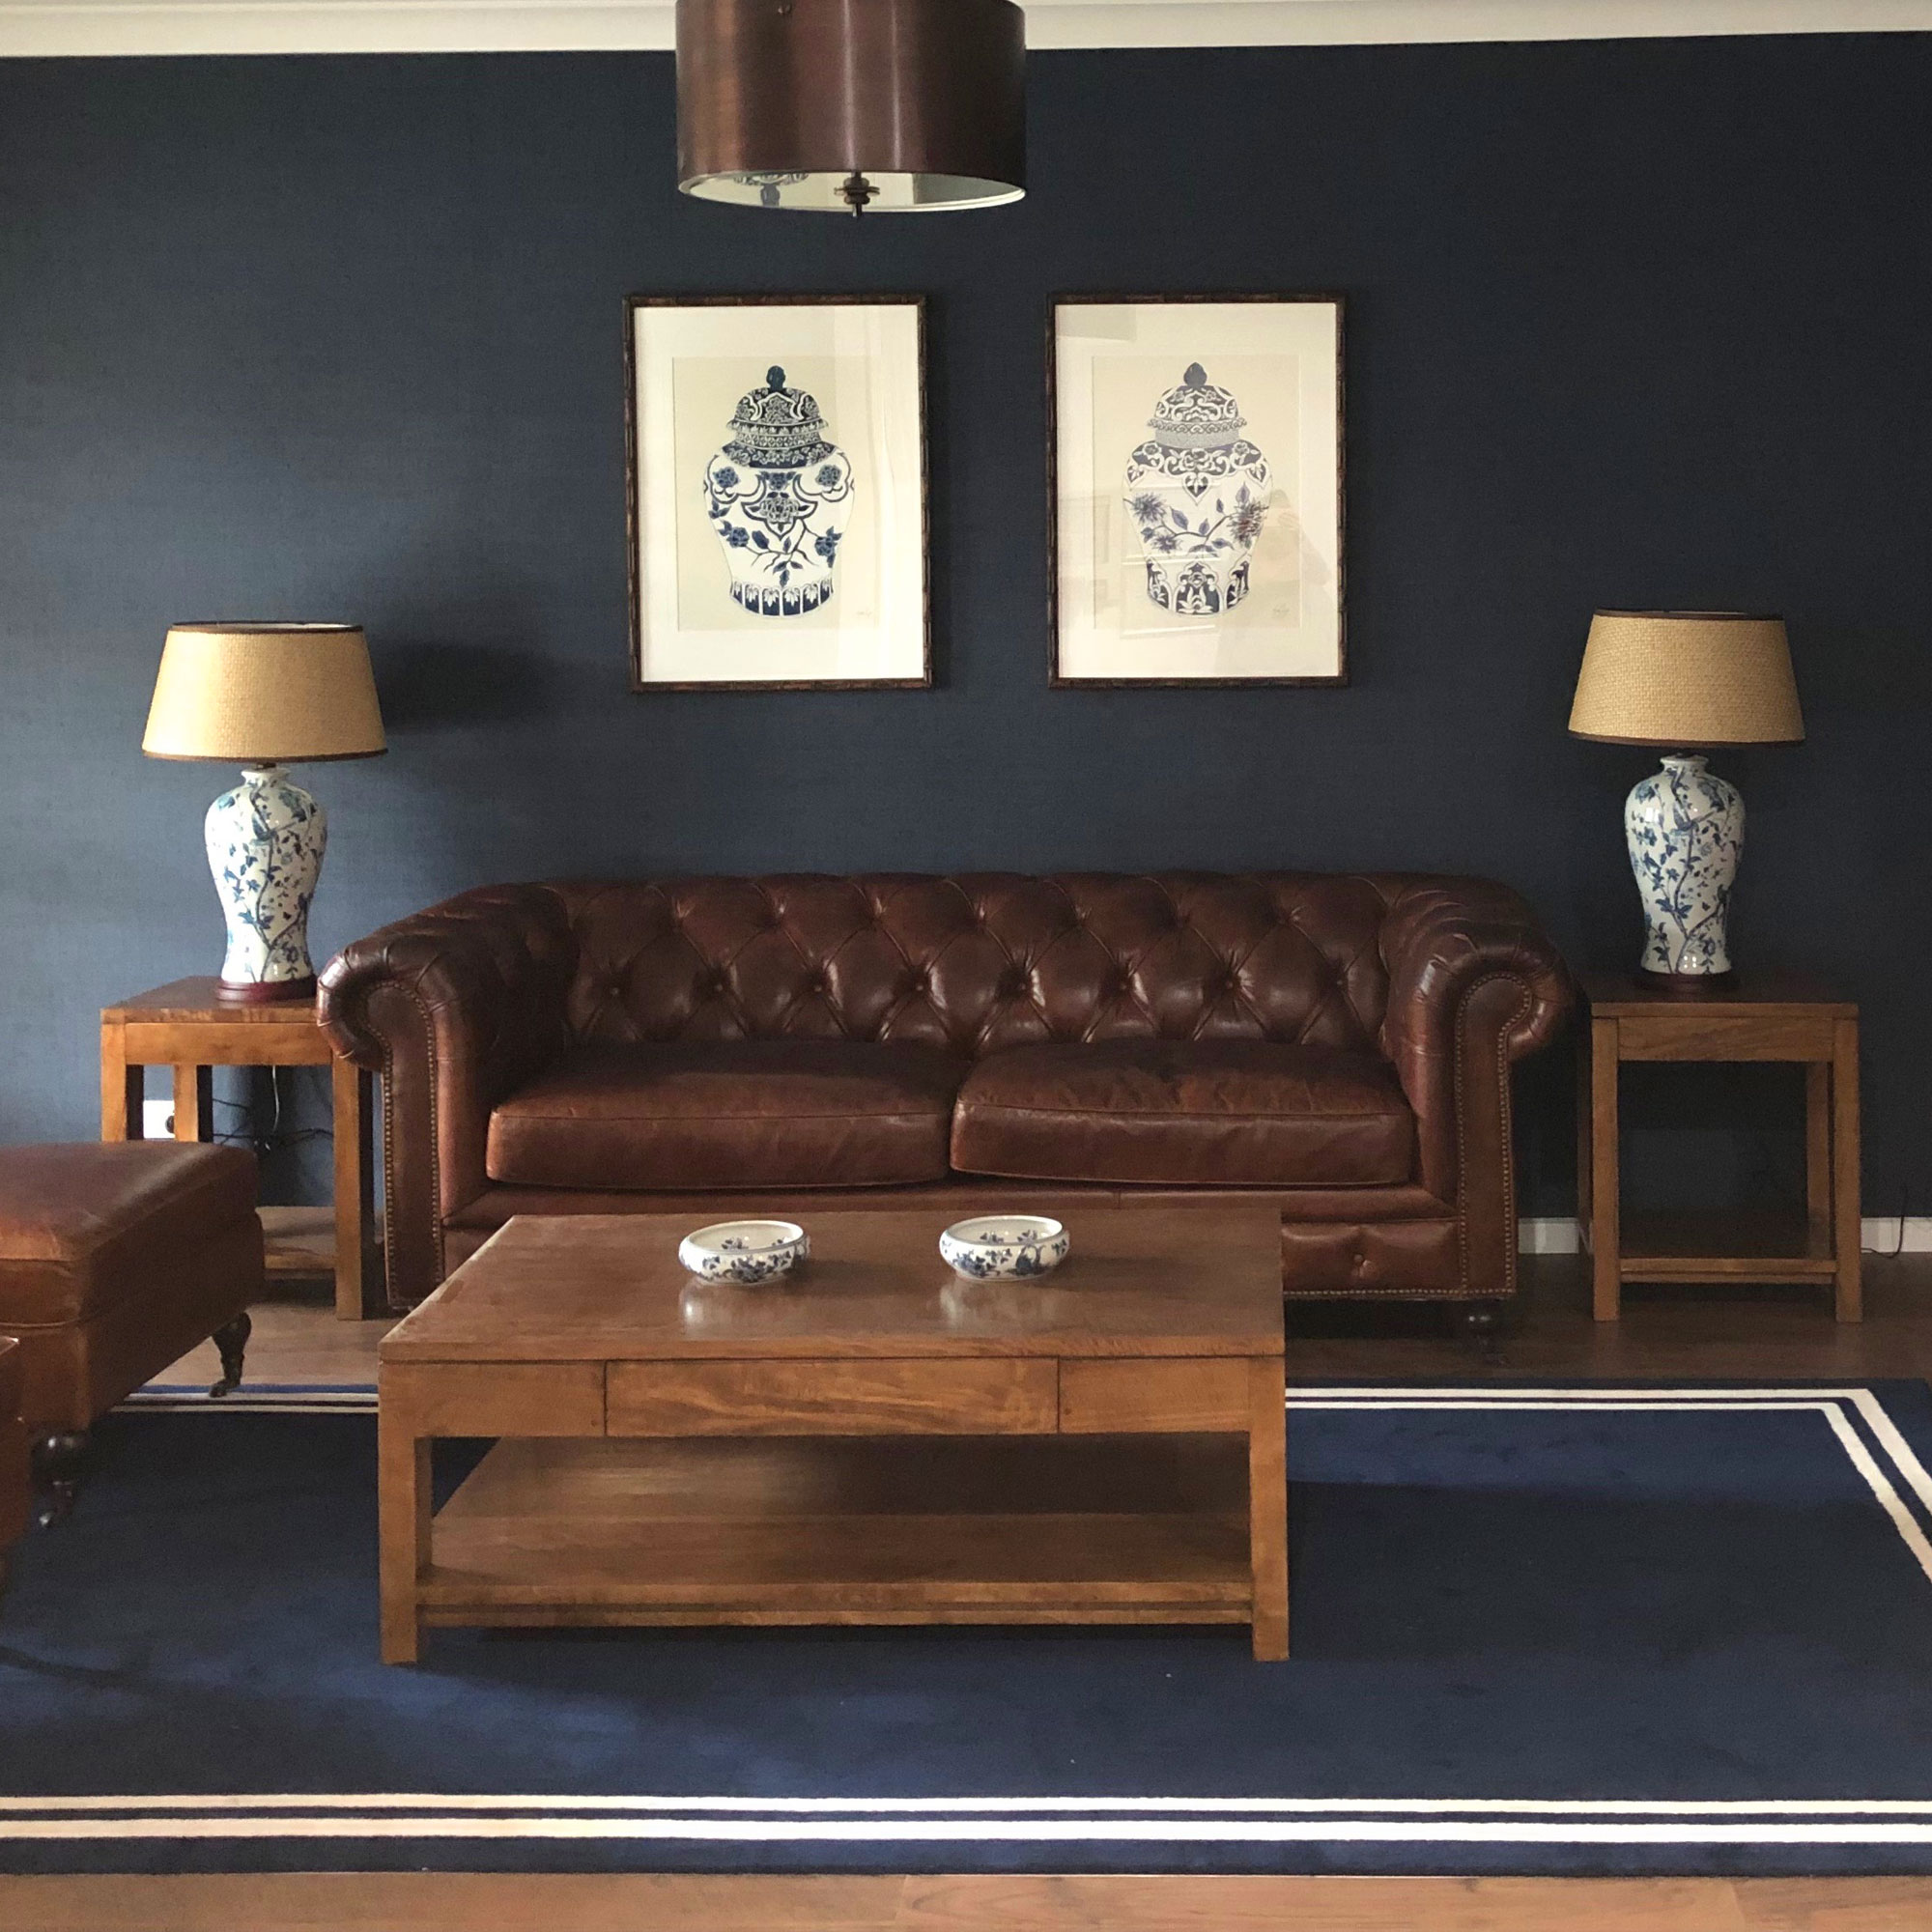 NEW-YORK-COFFEE-TABLE-WITH-SHELF-STYLED